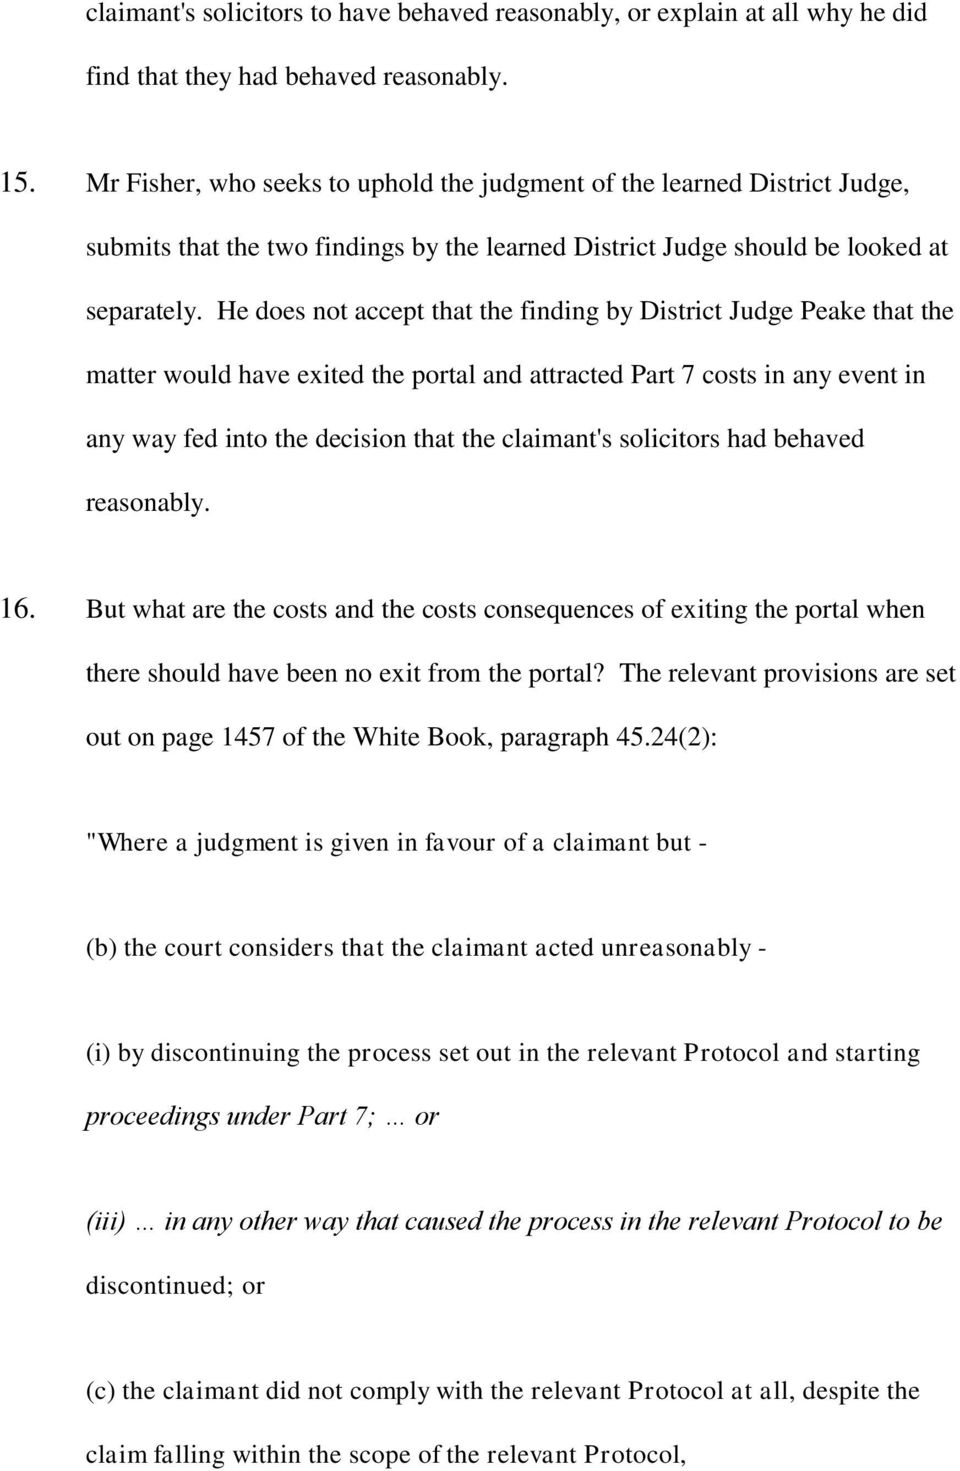 He does not accept that the finding by District Judge Peake that the matter would have exited the portal and attracted Part 7 costs in any event in any way fed into the decision that the claimant's